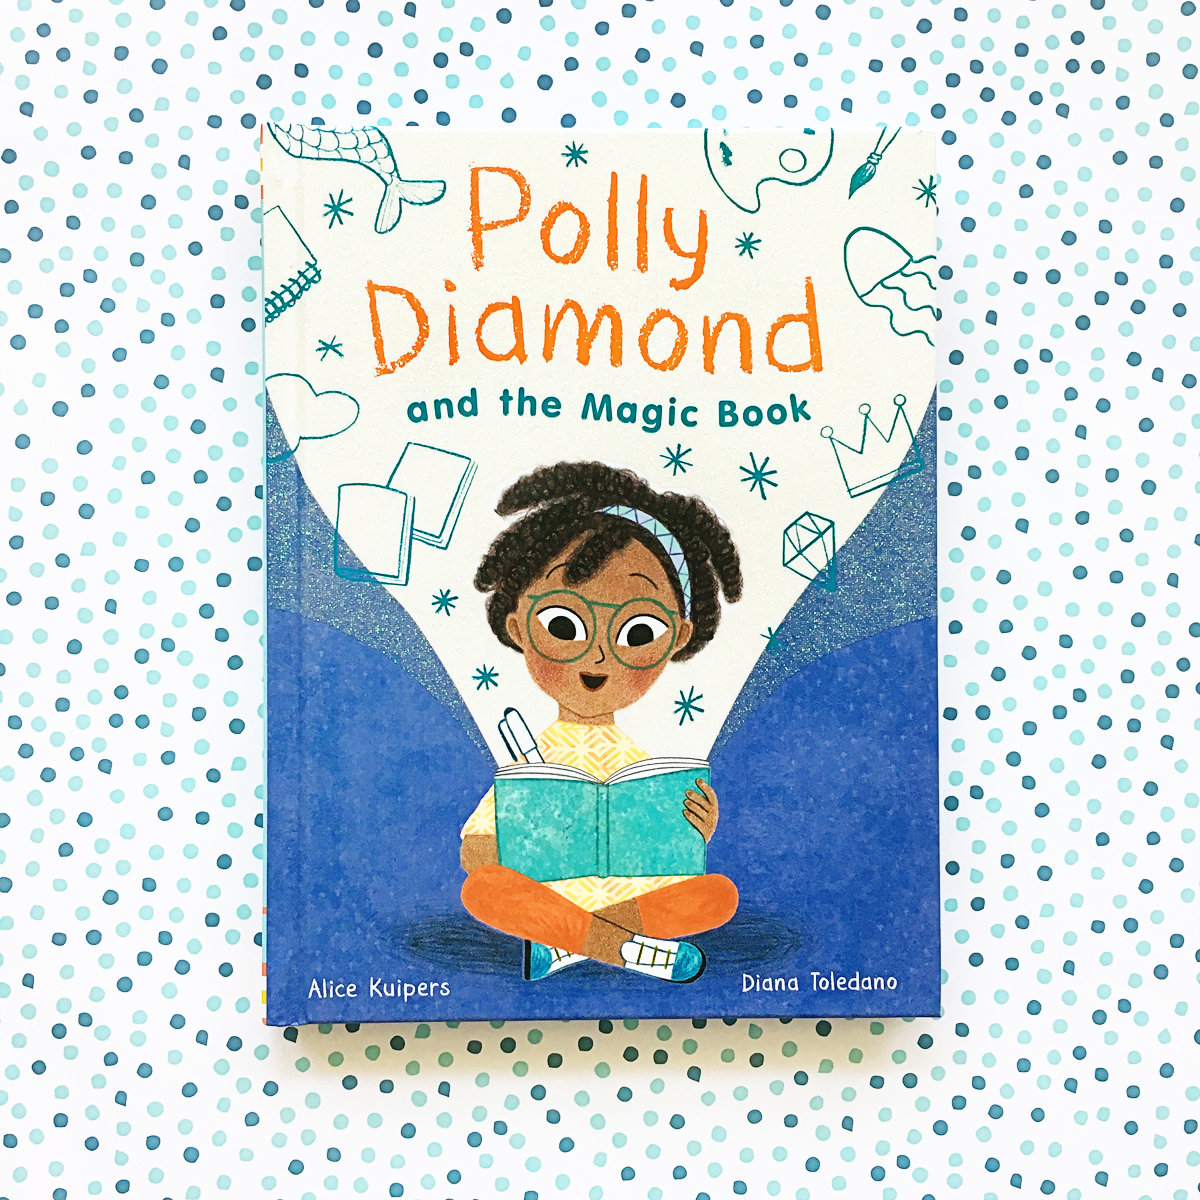 Polly Diamond and the Magic Book | Books For Diversity